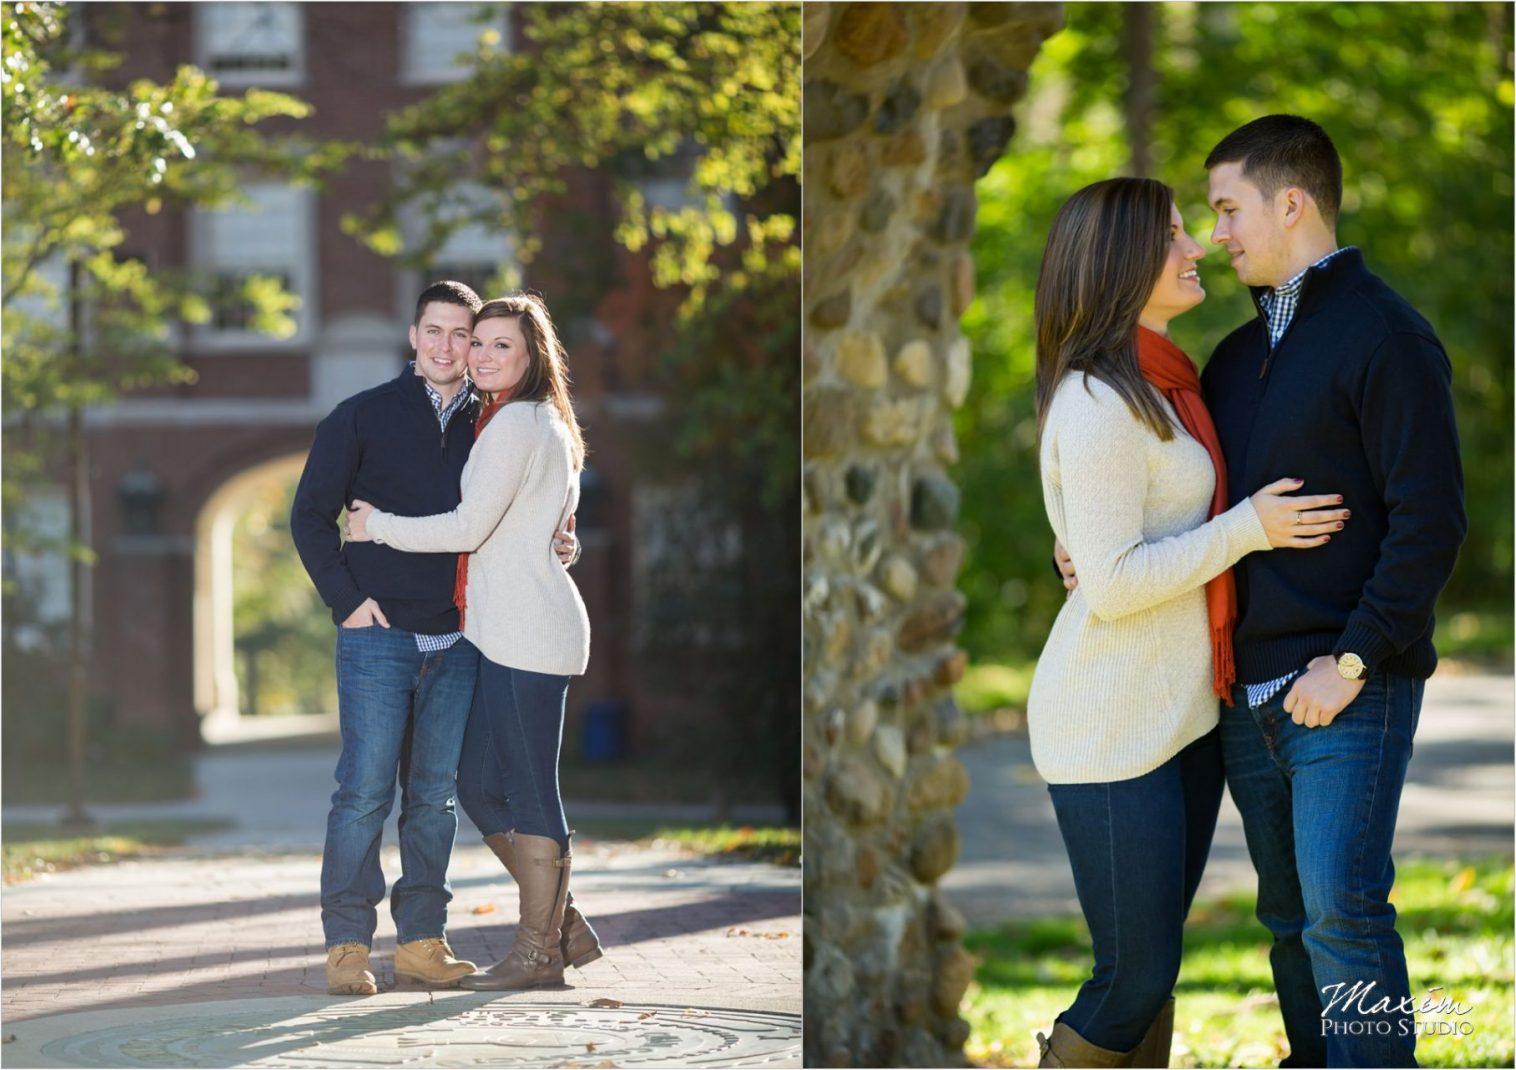 Miami of Ohio University Dayton Wedding Photographers